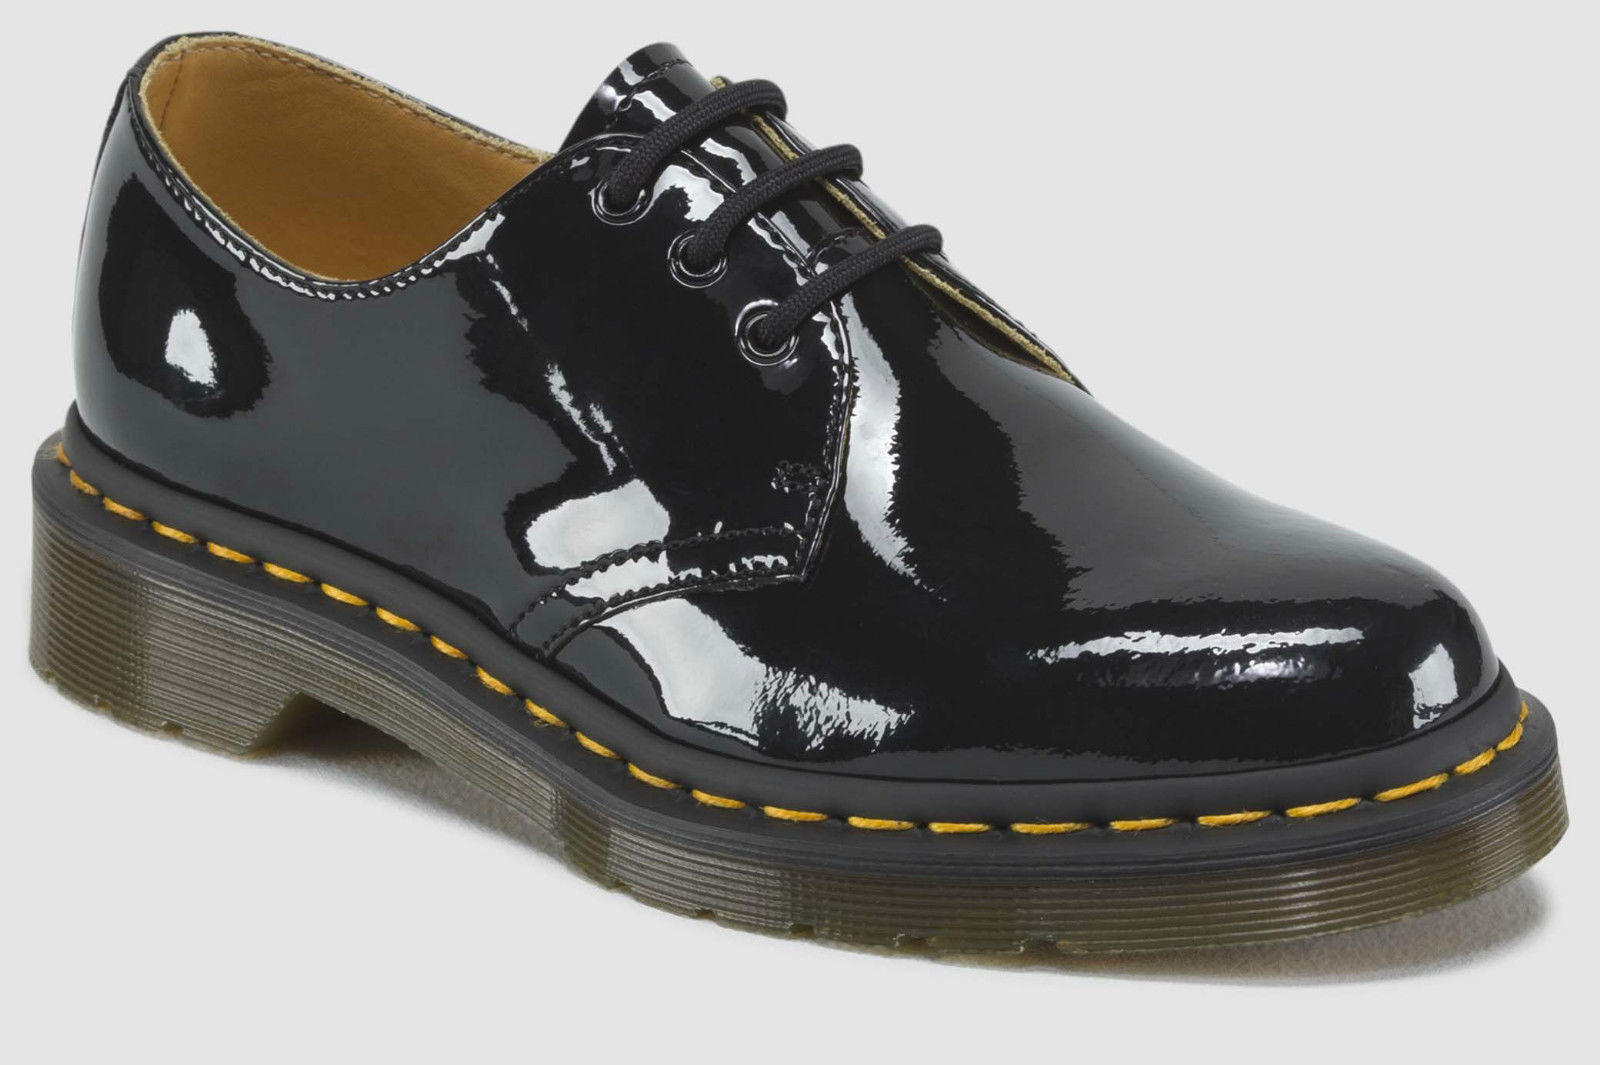 thumbnail 4 - Dr. Martens 1461 Patent 3 Eye Shoes Genuine Leather Ladies Womens Shiny Gloss